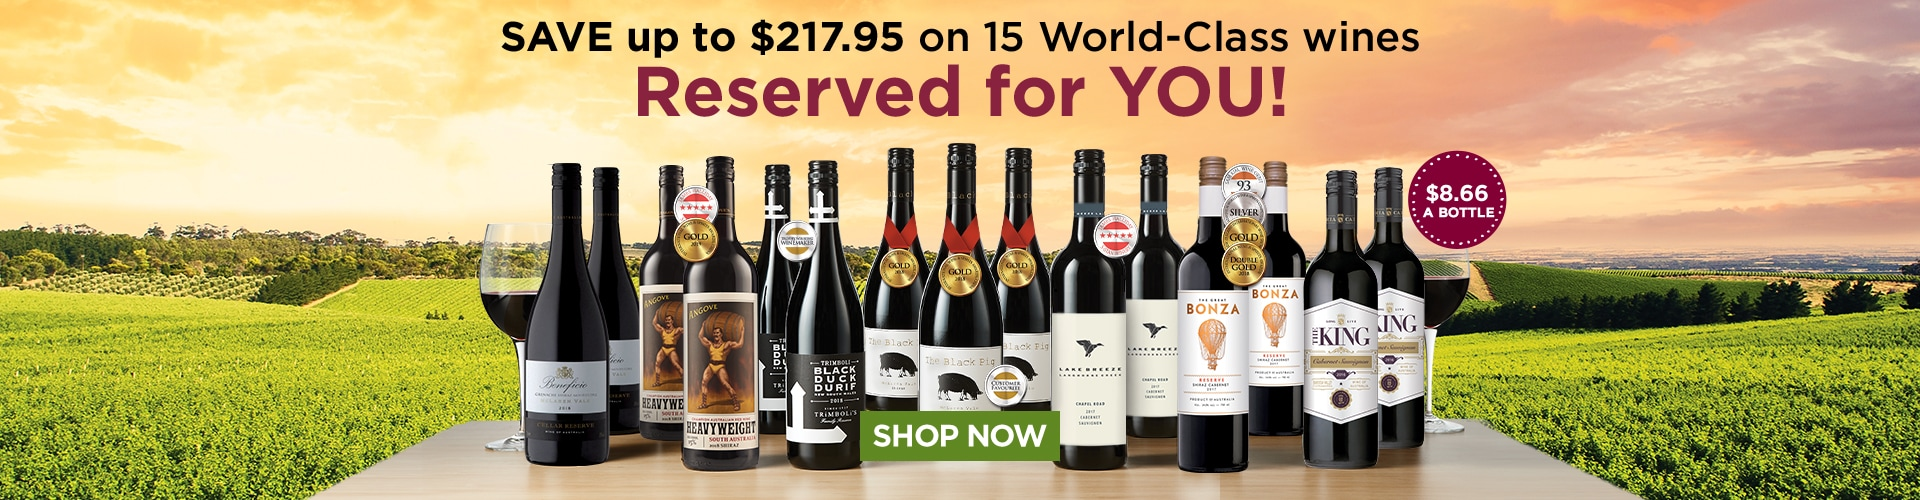 SAVE up to 228.97 on 15 World-class Reds - Reserved for you! Only 8.66 a bottle!